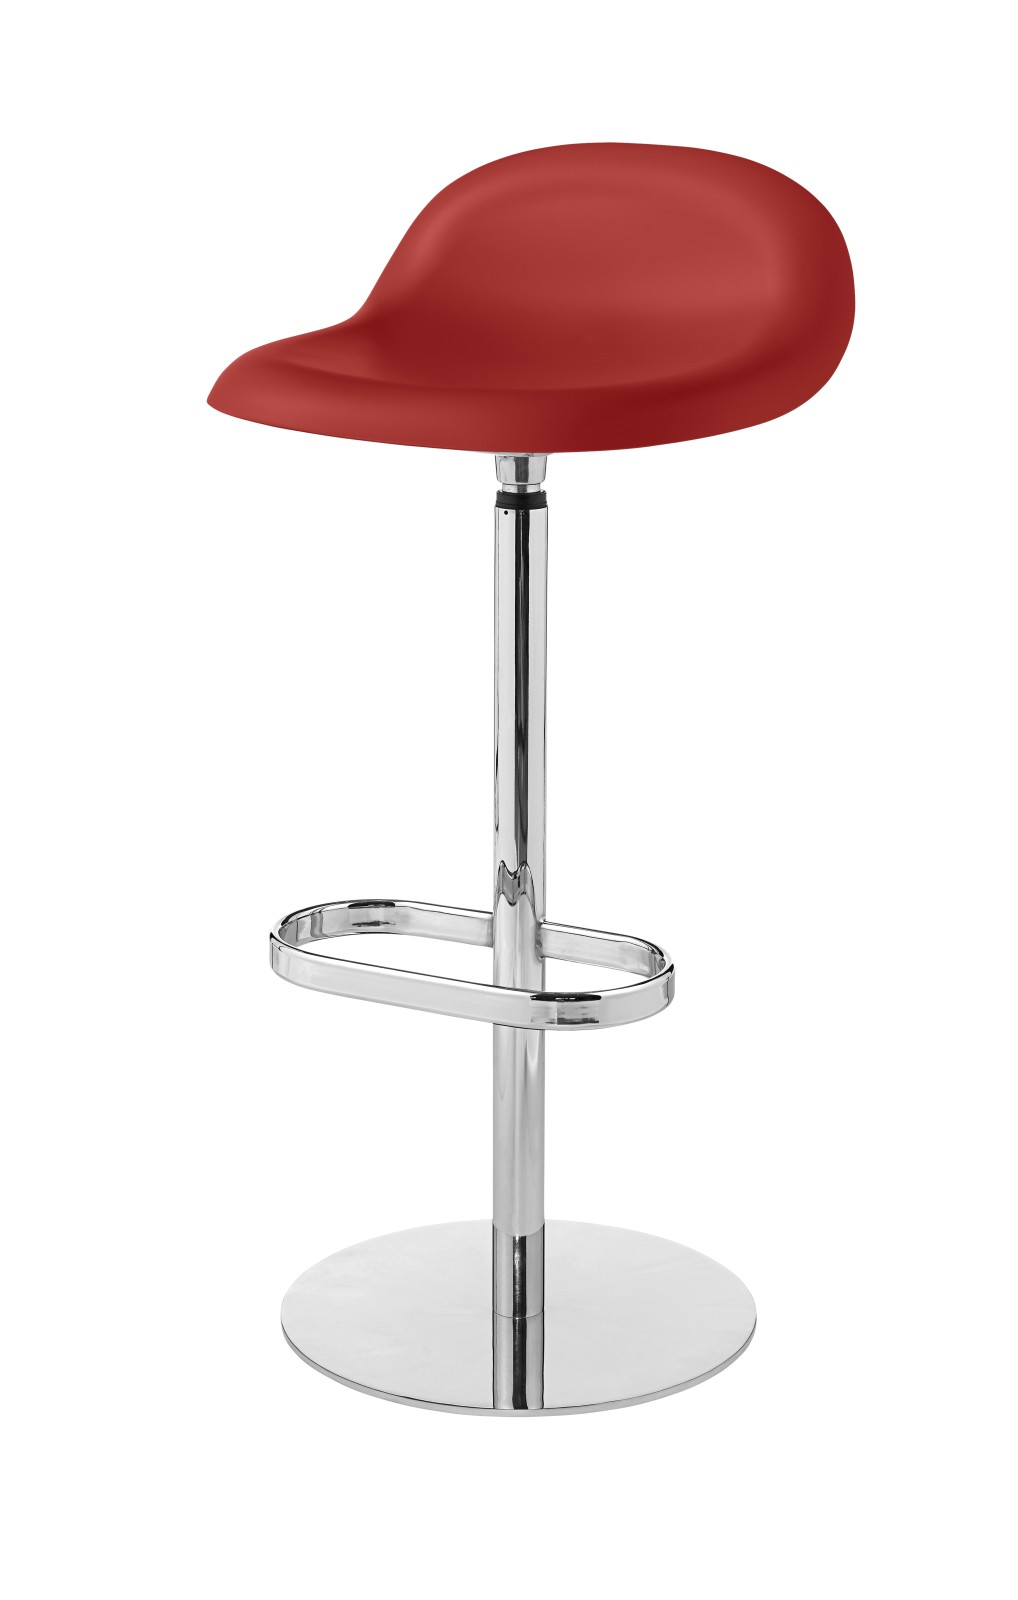 3D Bar Stool - Un-Upholstered, Returning Swivel Base Gubi HiRek Shy Cherry Red